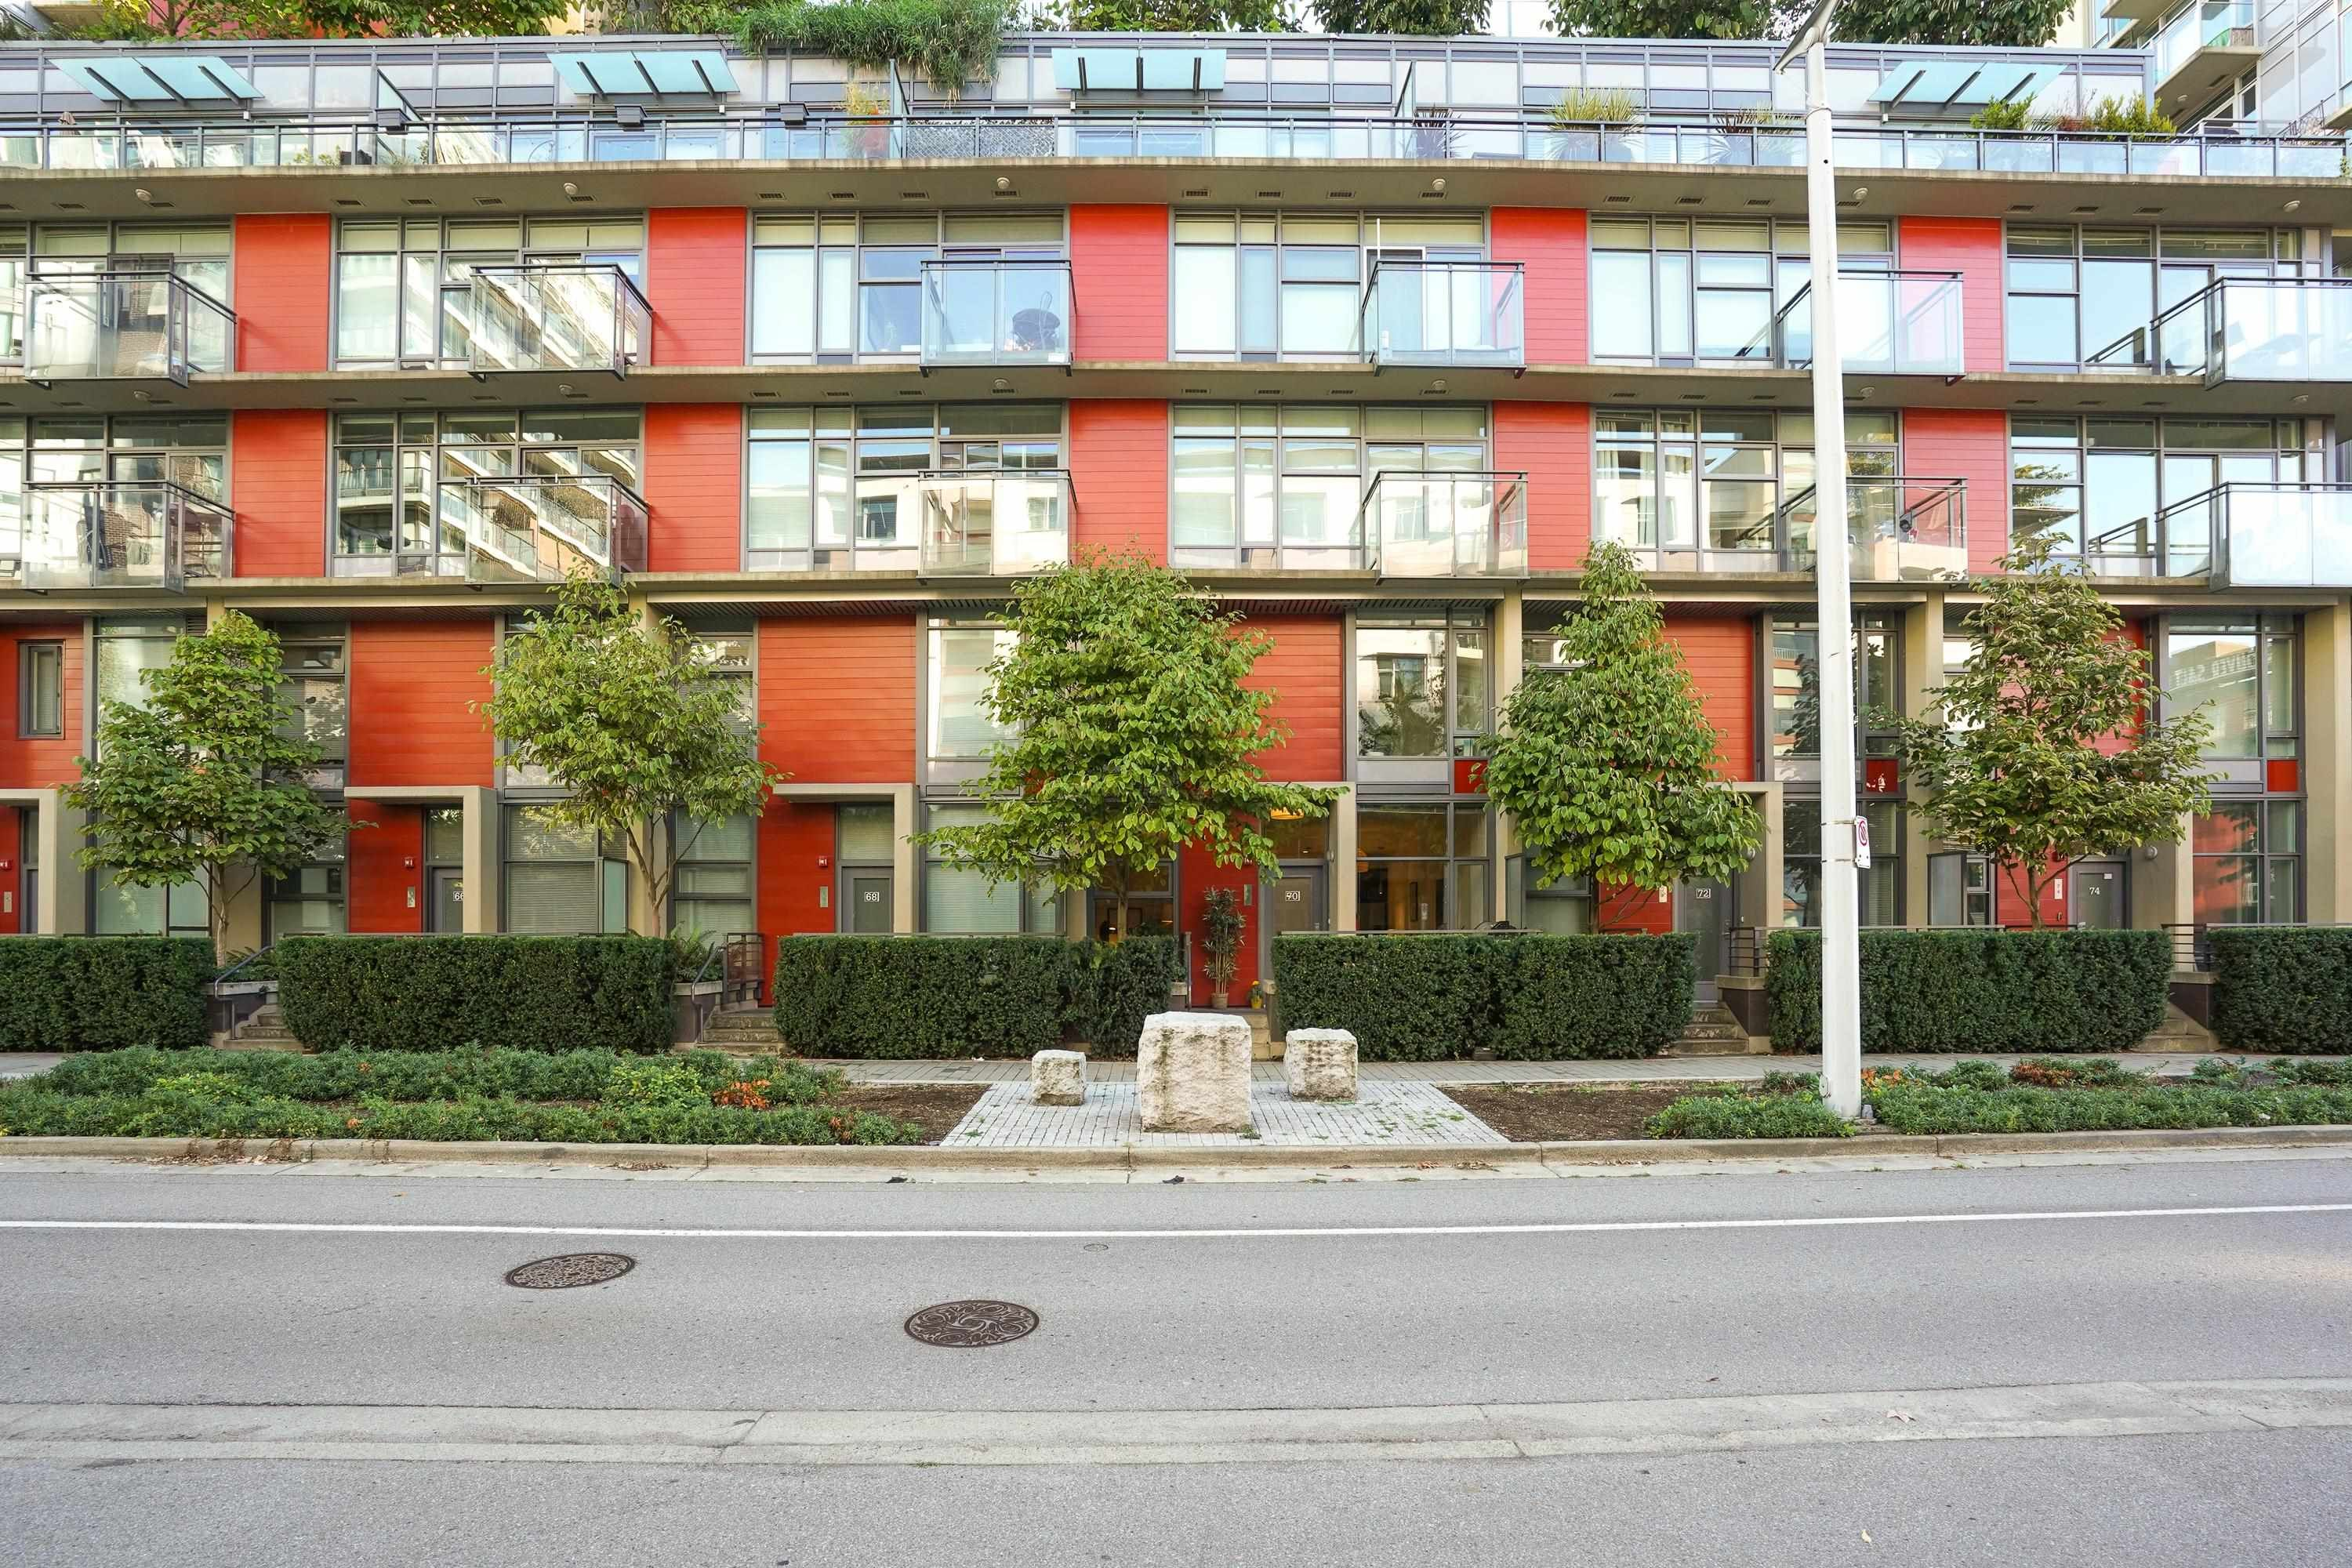 """Main Photo: 70 W 1ST Avenue in Vancouver: False Creek Townhouse for sale in """"THE ONE"""" (Vancouver West)  : MLS®# R2618559"""